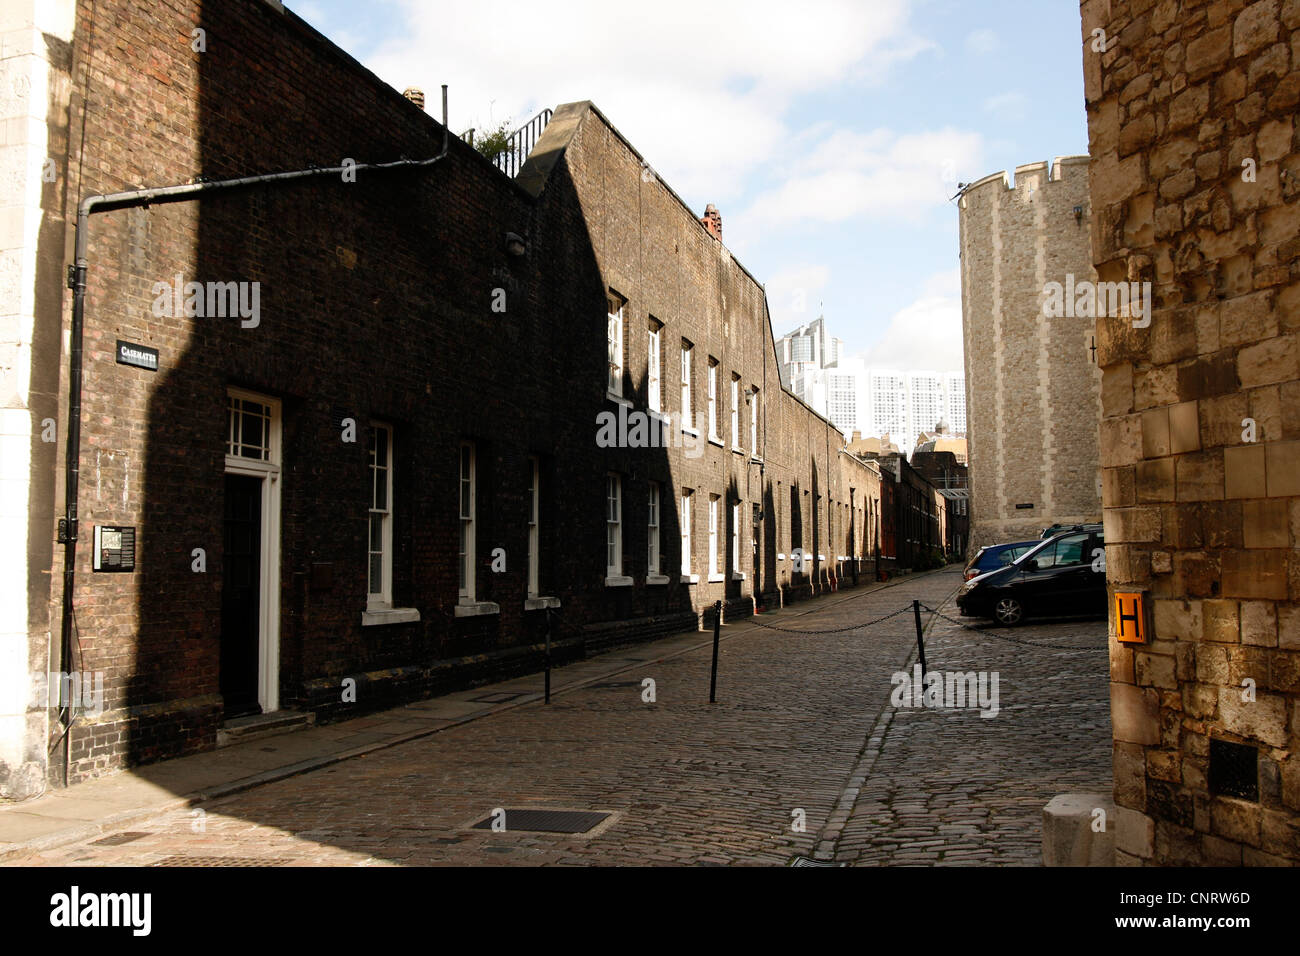 Tower of London - casemates - Stock Image